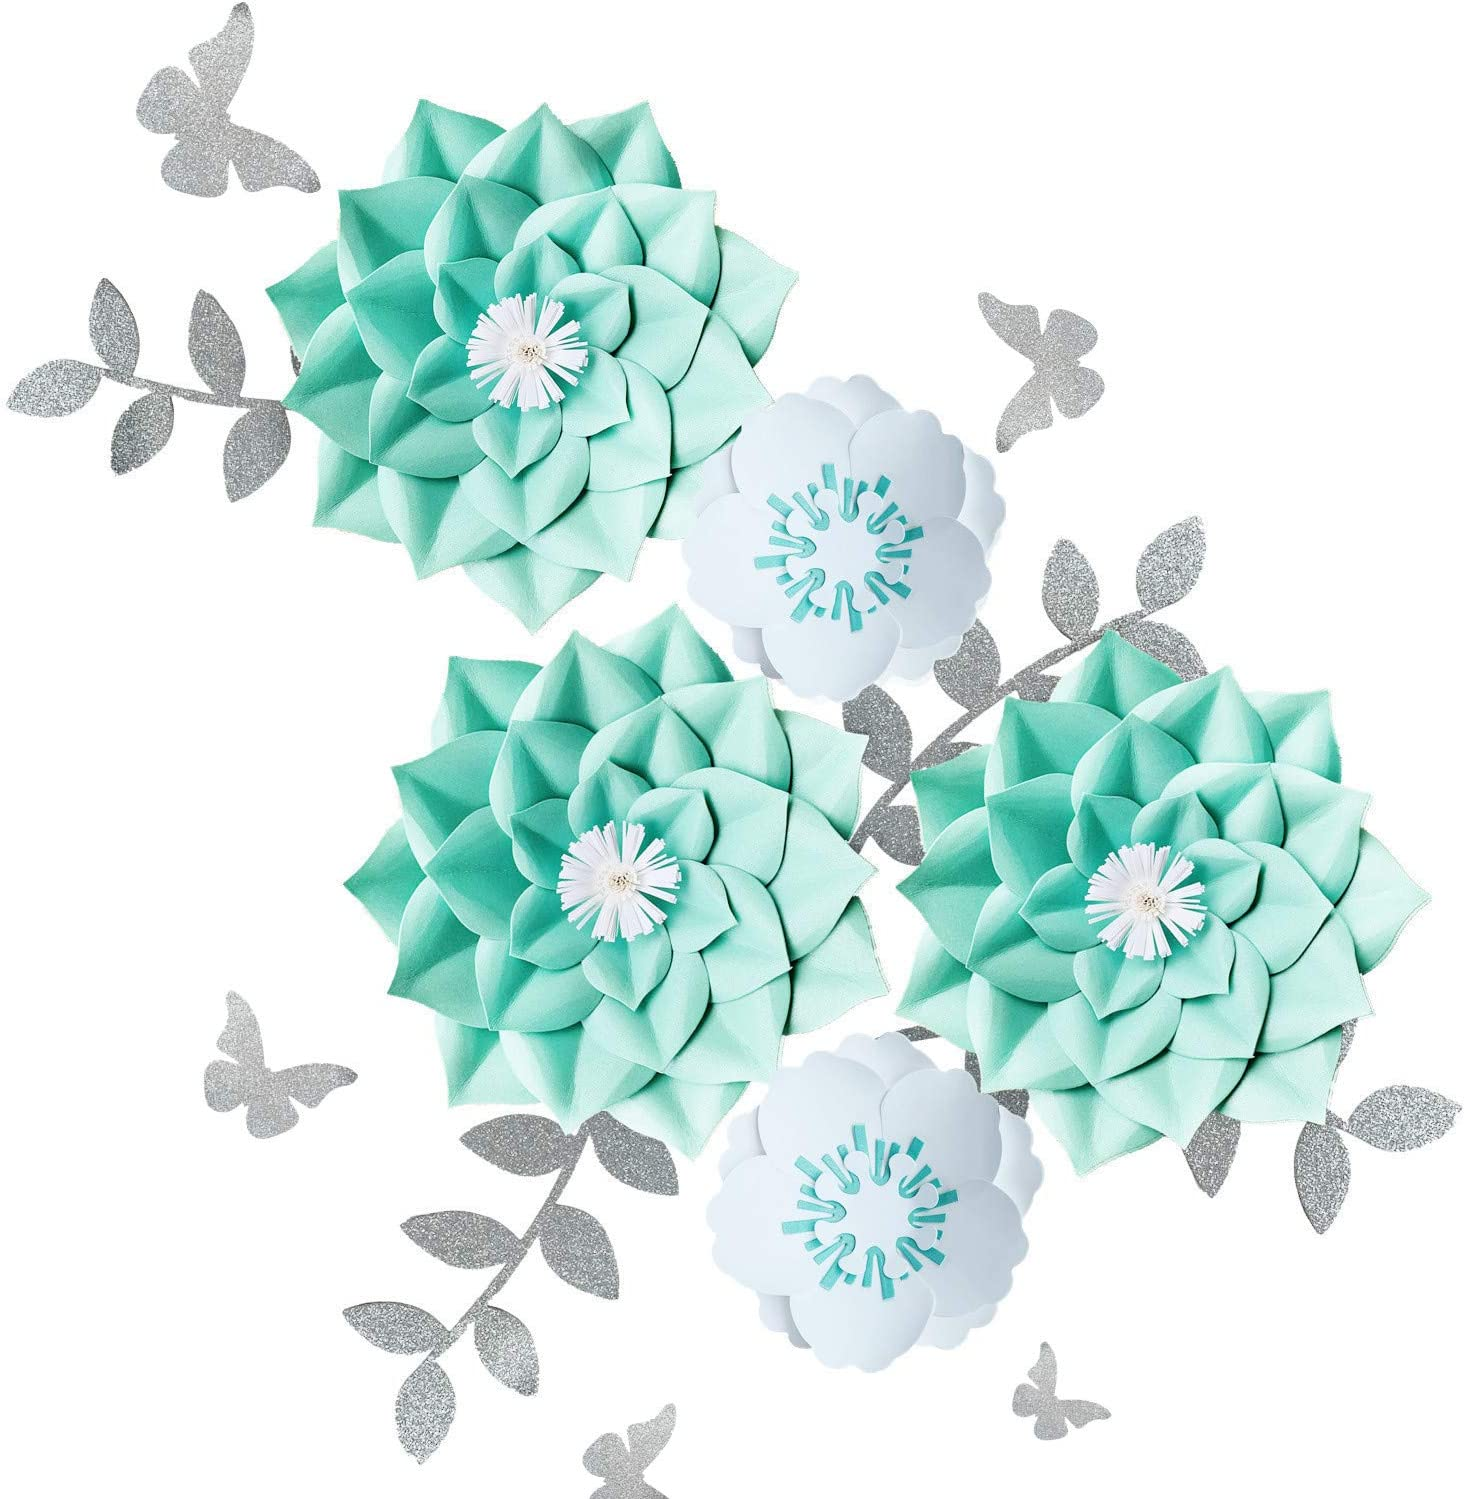 Fonder Mols 3D Paper Flower Decorations(Set of 5, Dahlia, Teal & White) for Wall Backdrop, Teal Bridal Shower Decorations, Teal Nursery Decor, Teal Wedding Centerpiece, NO DIY